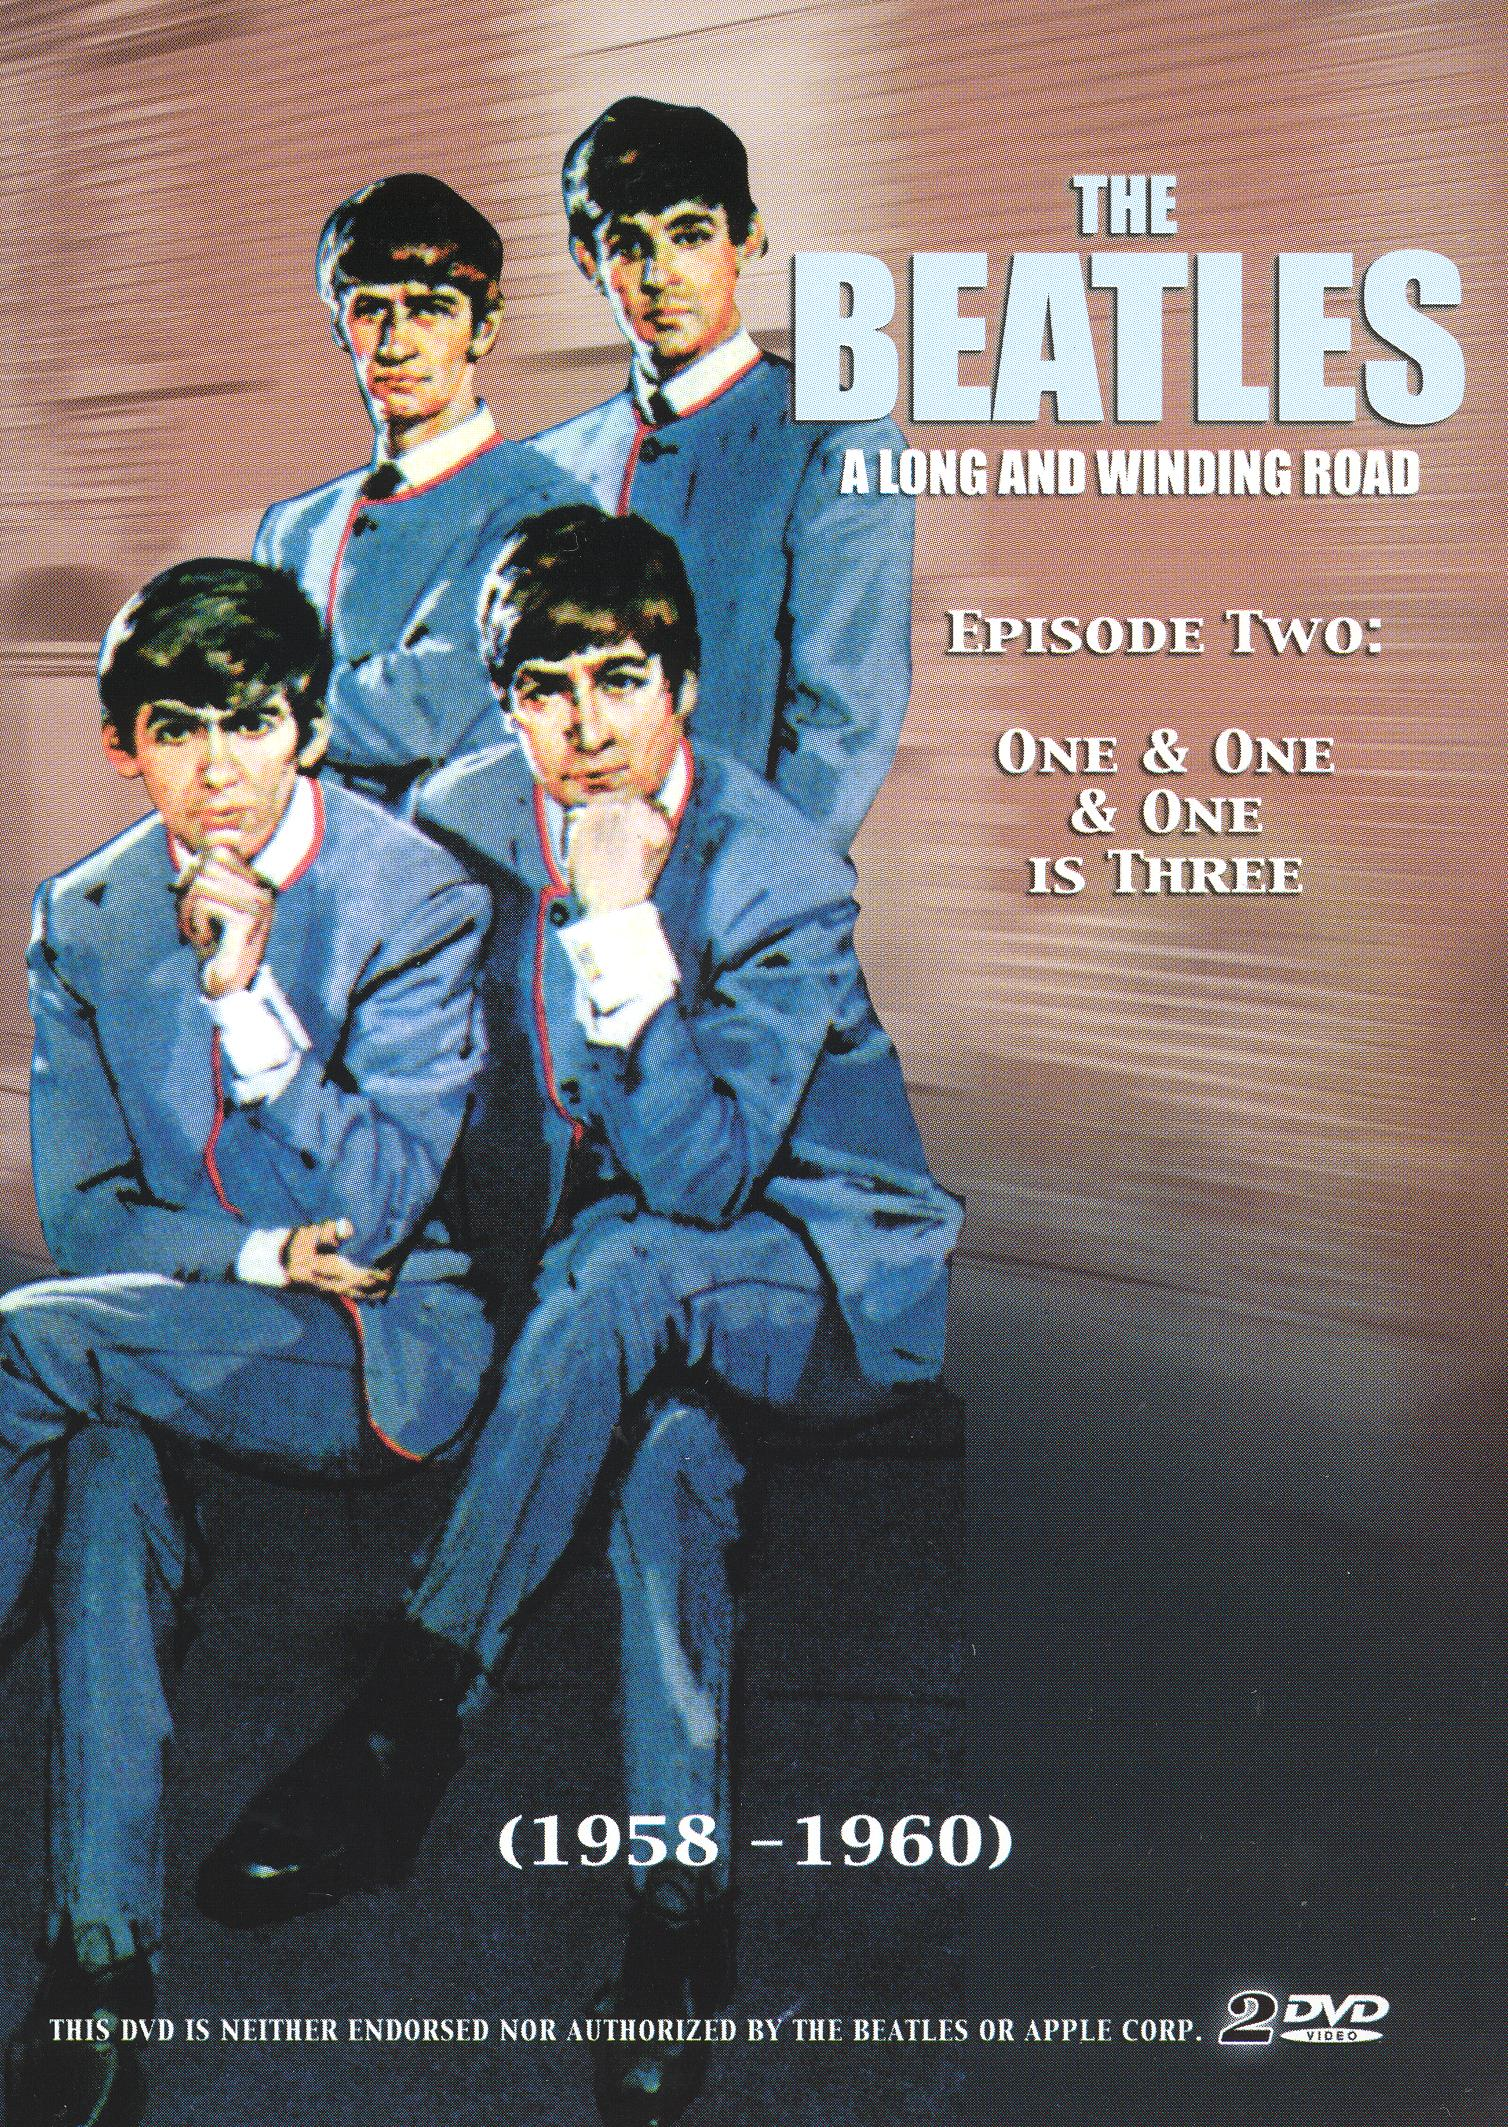 The Beatles: A Long and Winding Road, Episode 2: One & One & One Is Three (1958-1960)